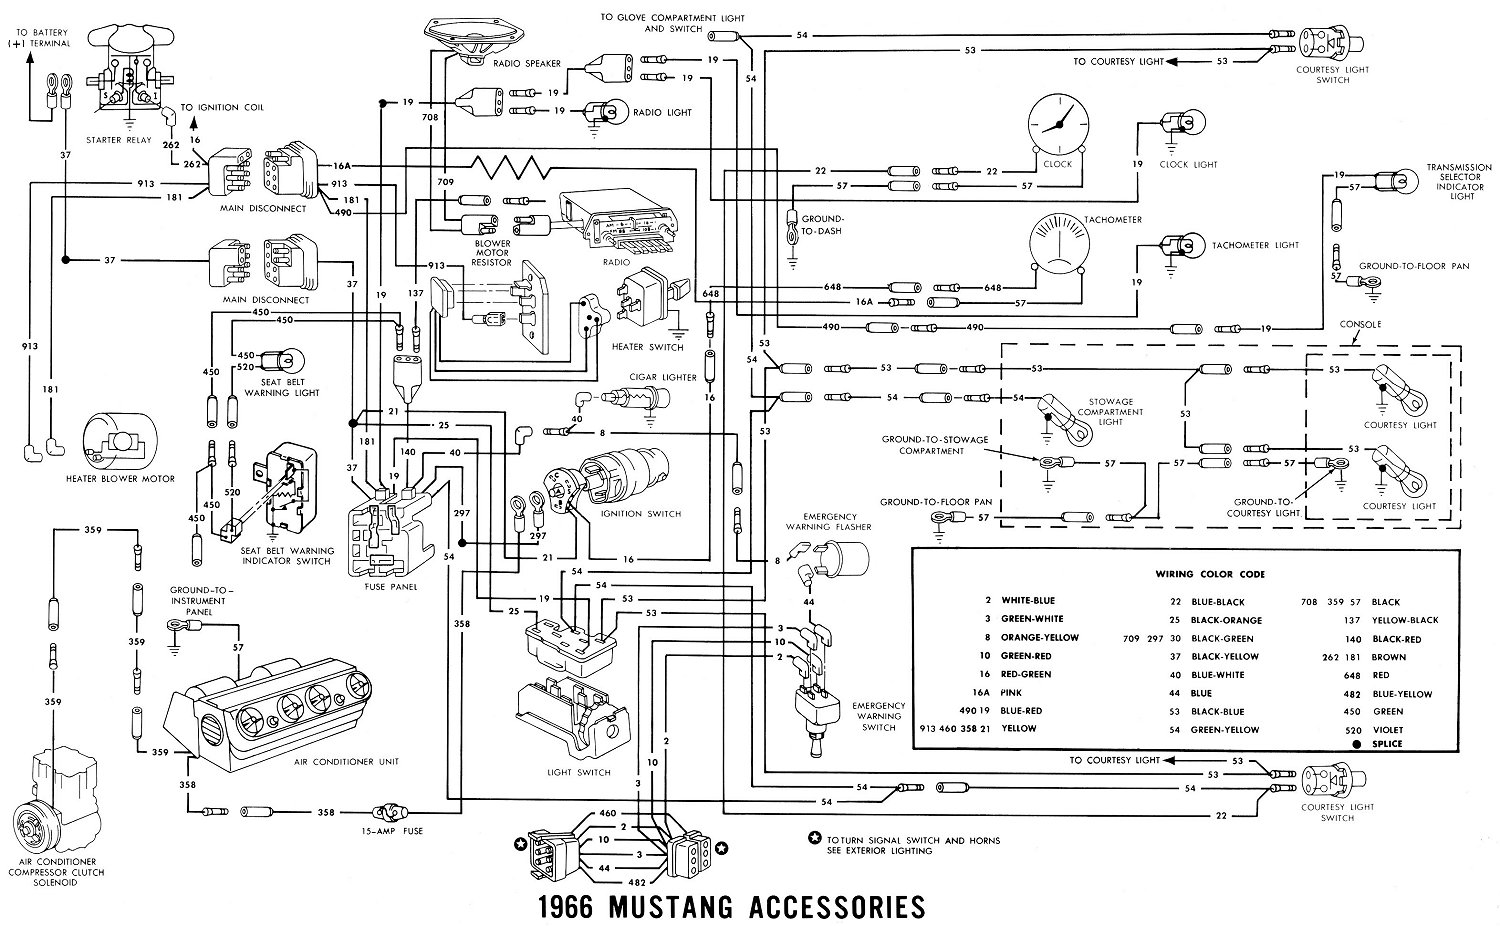 Diagram 05 Ford Mustang Wiring Diagram Full Version Hd Quality Wiring Diagram Diagrampress Efran It